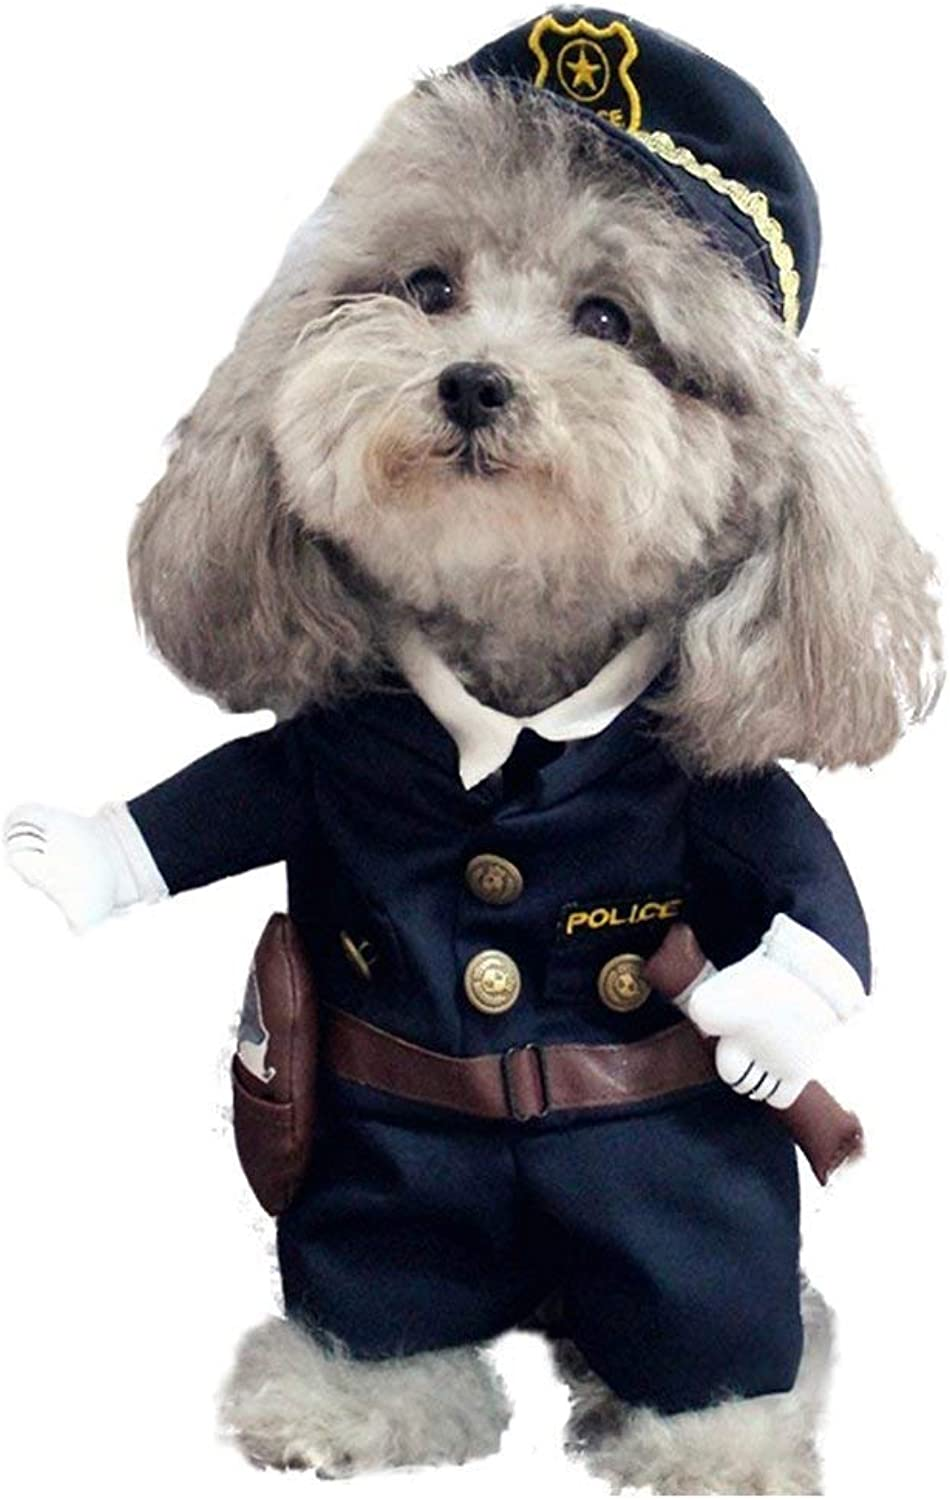 Pet Policeman Costumes Clothes Dog and Cat Dress Halloween Party Suit Outfit Cotton Apparel,M